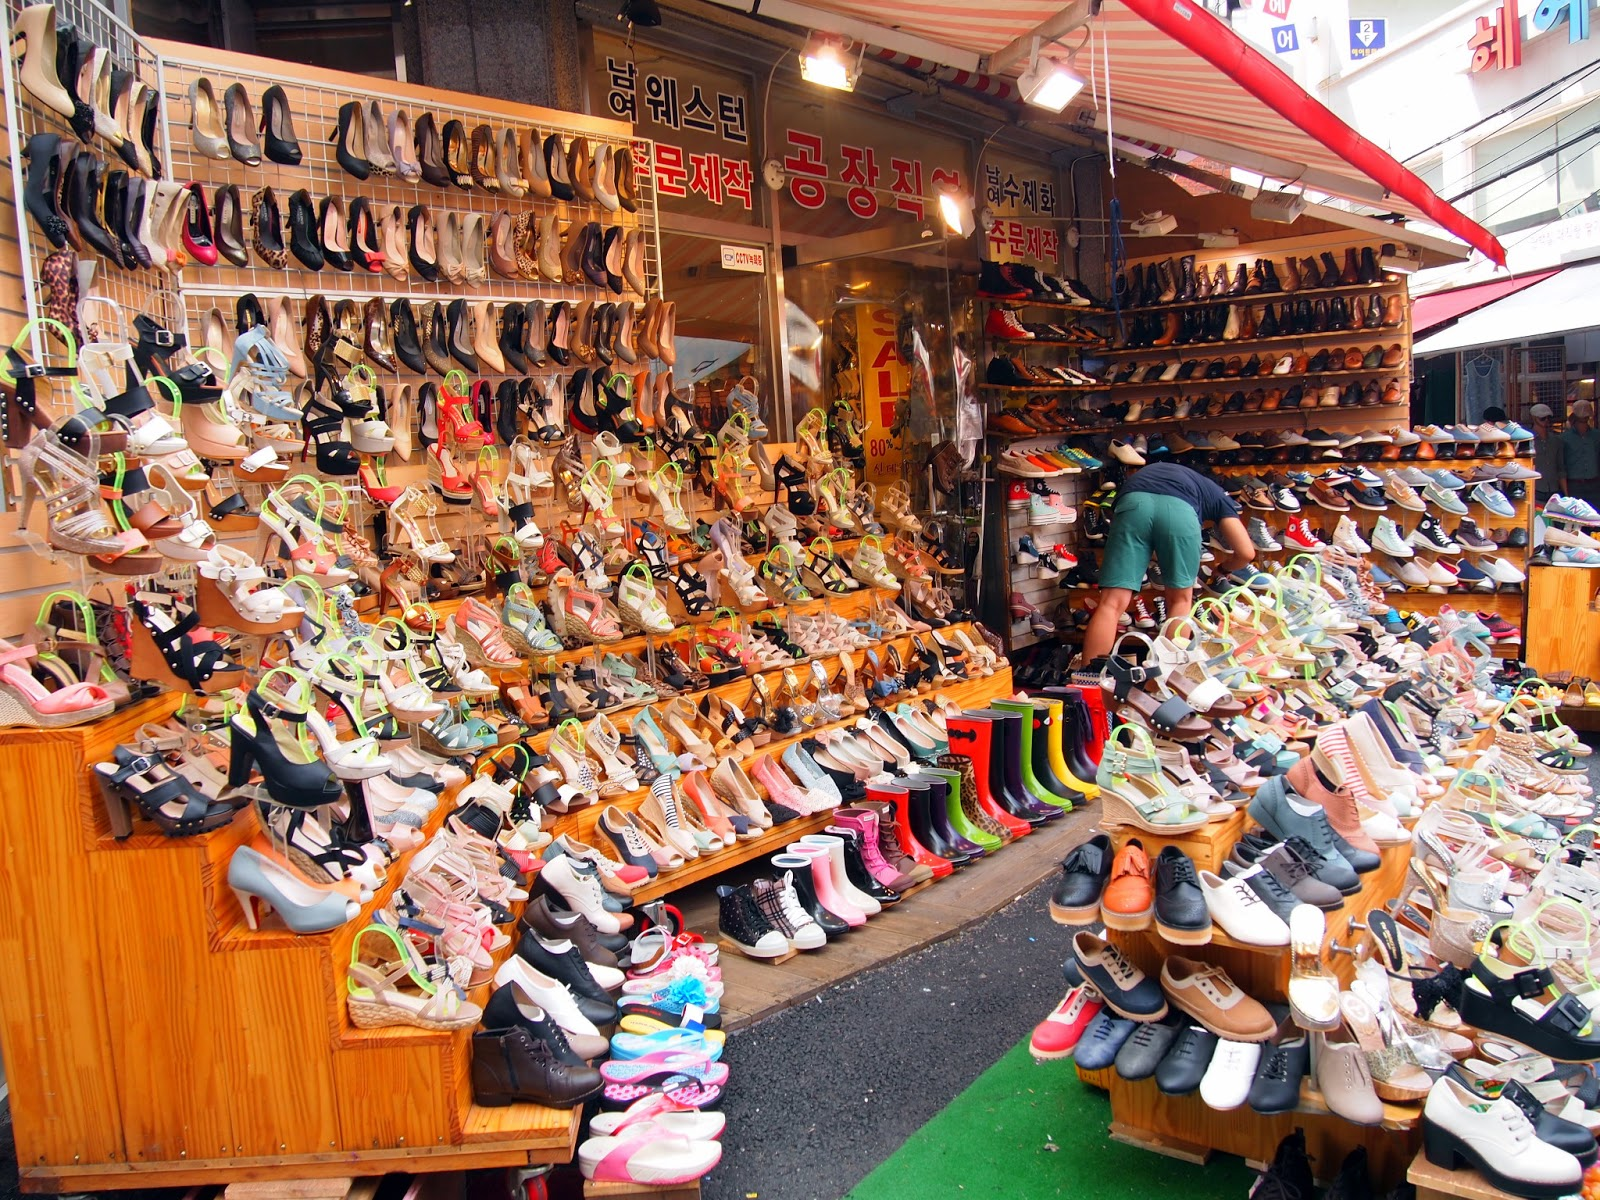 Women's shoes in the famous Dongdaemun shopping district remain unbought amidst record-low consumer confidence in South Korea.